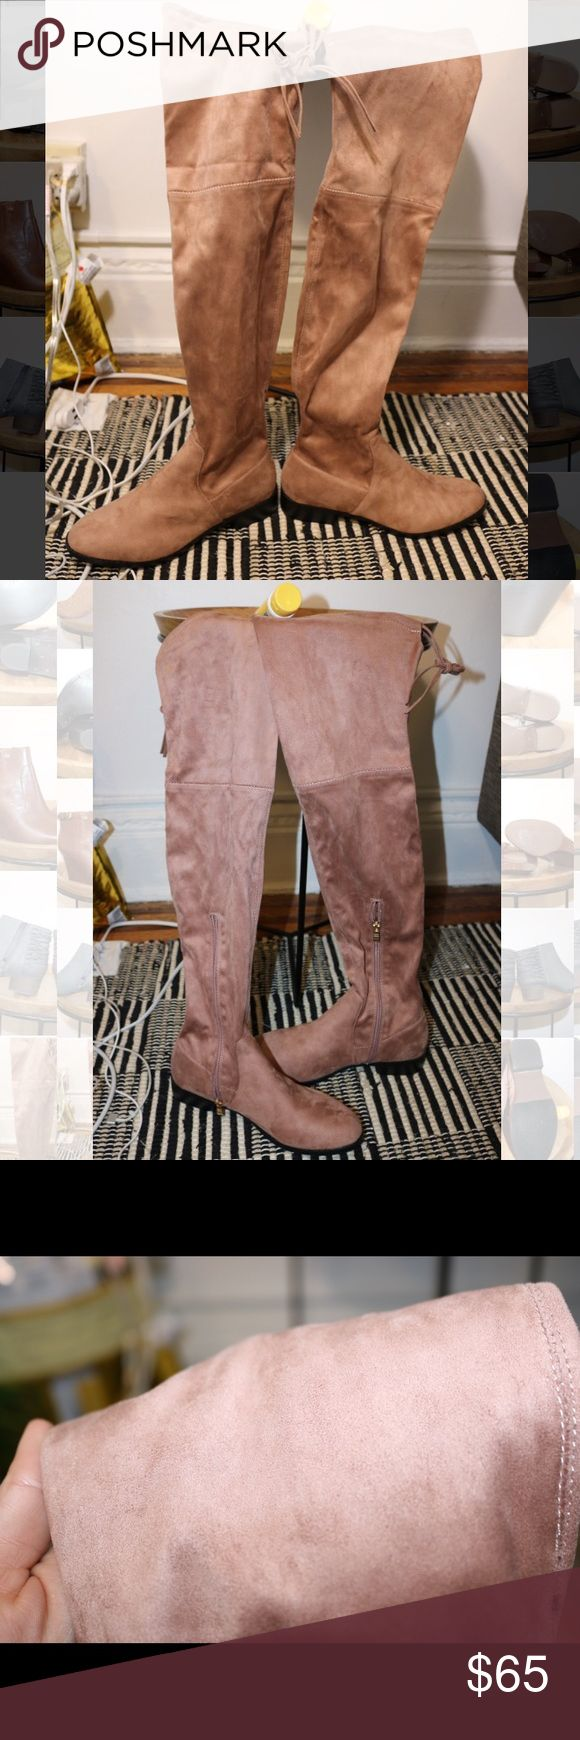 NWOT PEACH Catherine Malandrino Suede Over Knee These are a PEACH, pinkish beige color, suede over the knee boot. Never worn out of the store. Please note photos were taken with a high resolution camera so things that may look like flaws are just lighting and resolution. I disclose any and all issues within the item description. Catherine Malandrino Shoes Over the Knee Boots